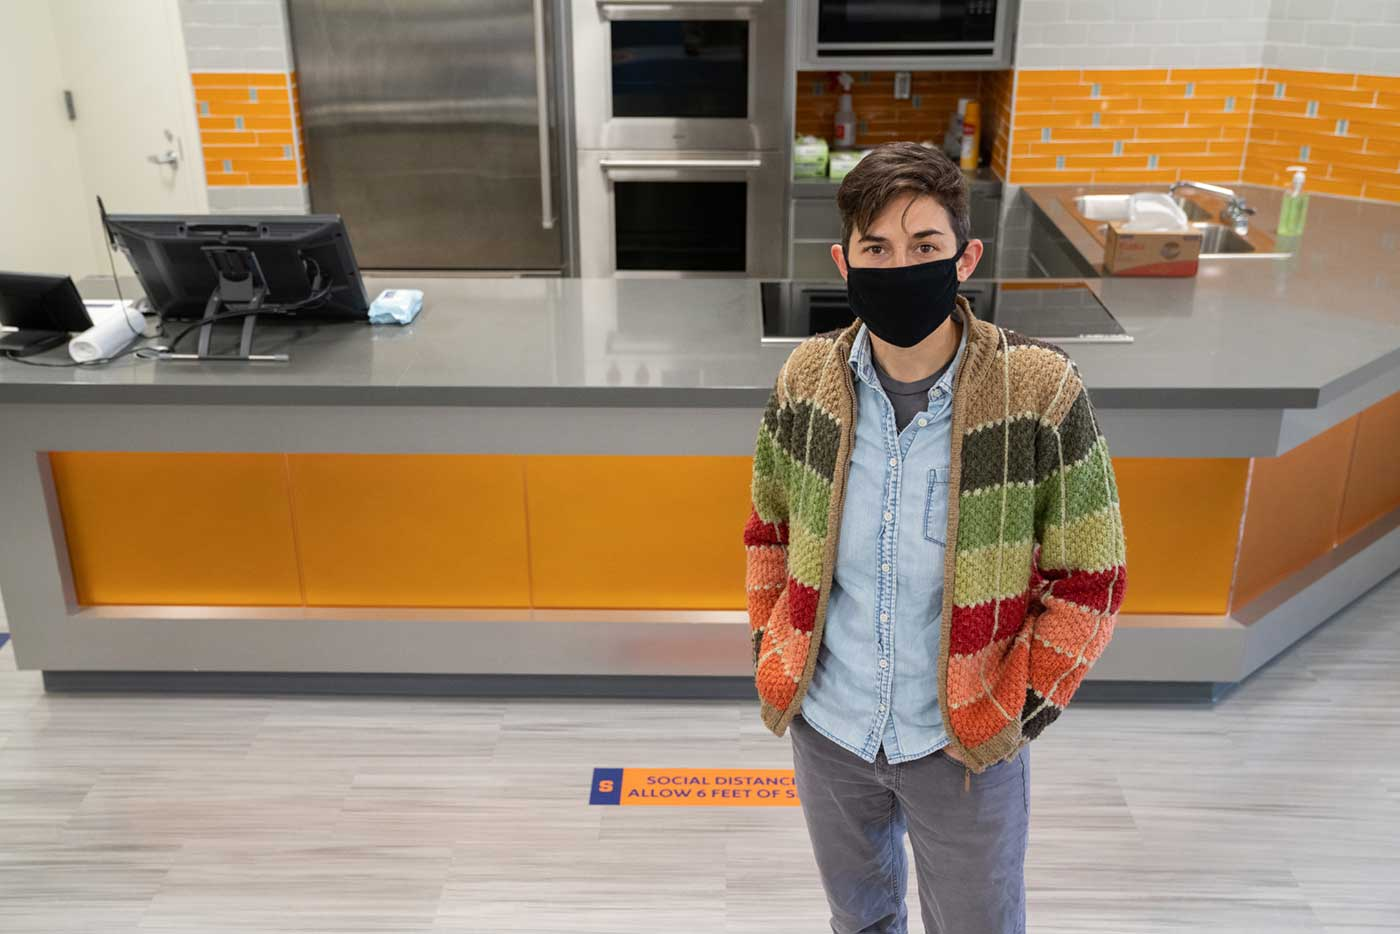 A person is standing in a studio kitchen